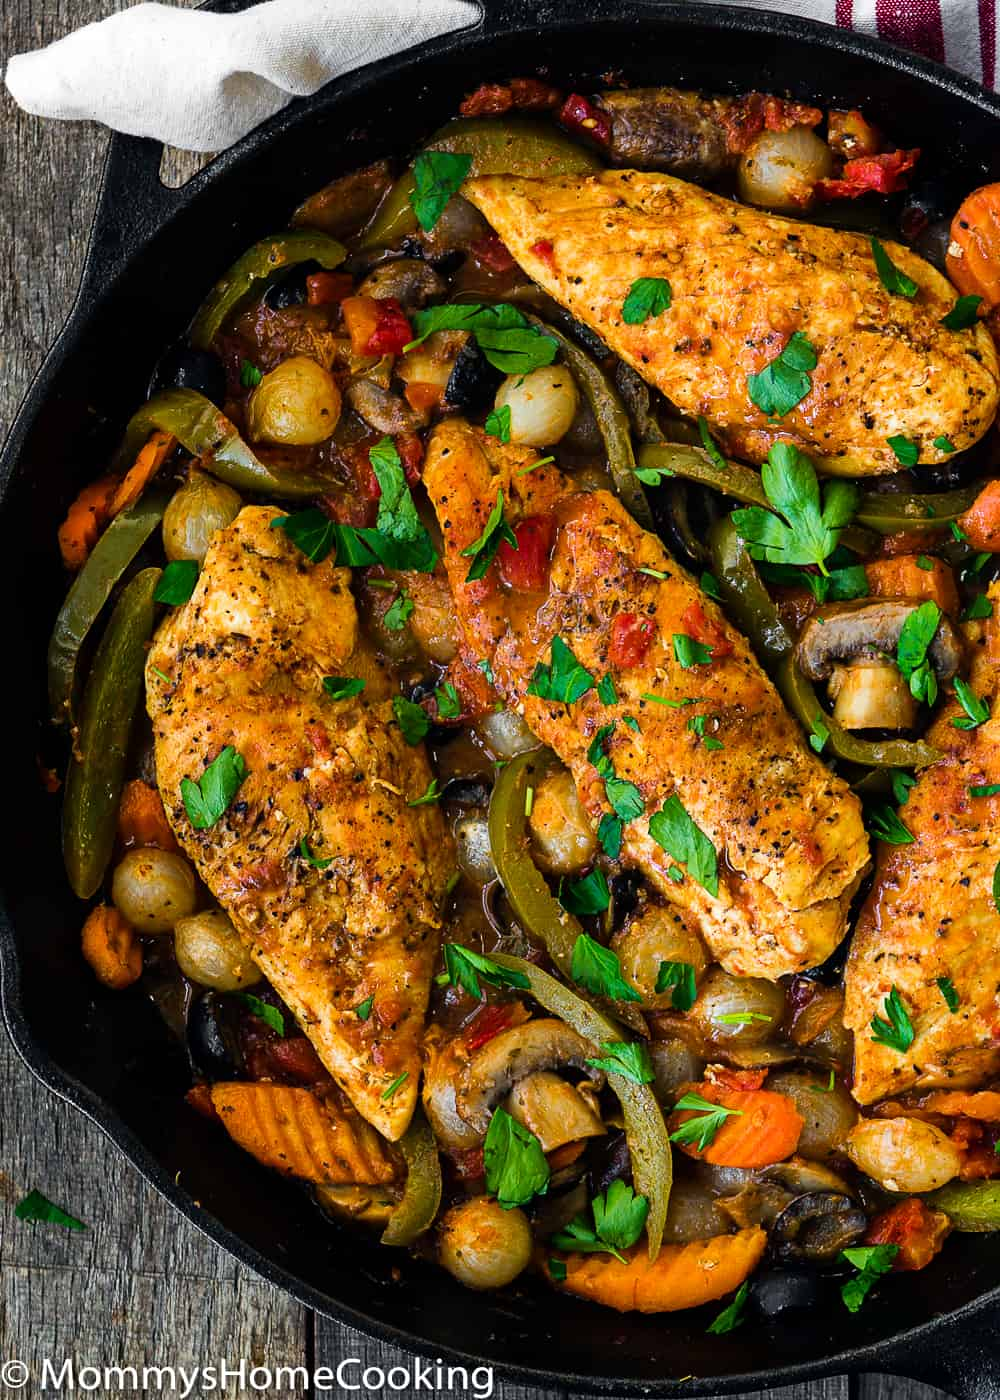 Easy Chicken Cacciatore with veggies  in a cast iron skillet